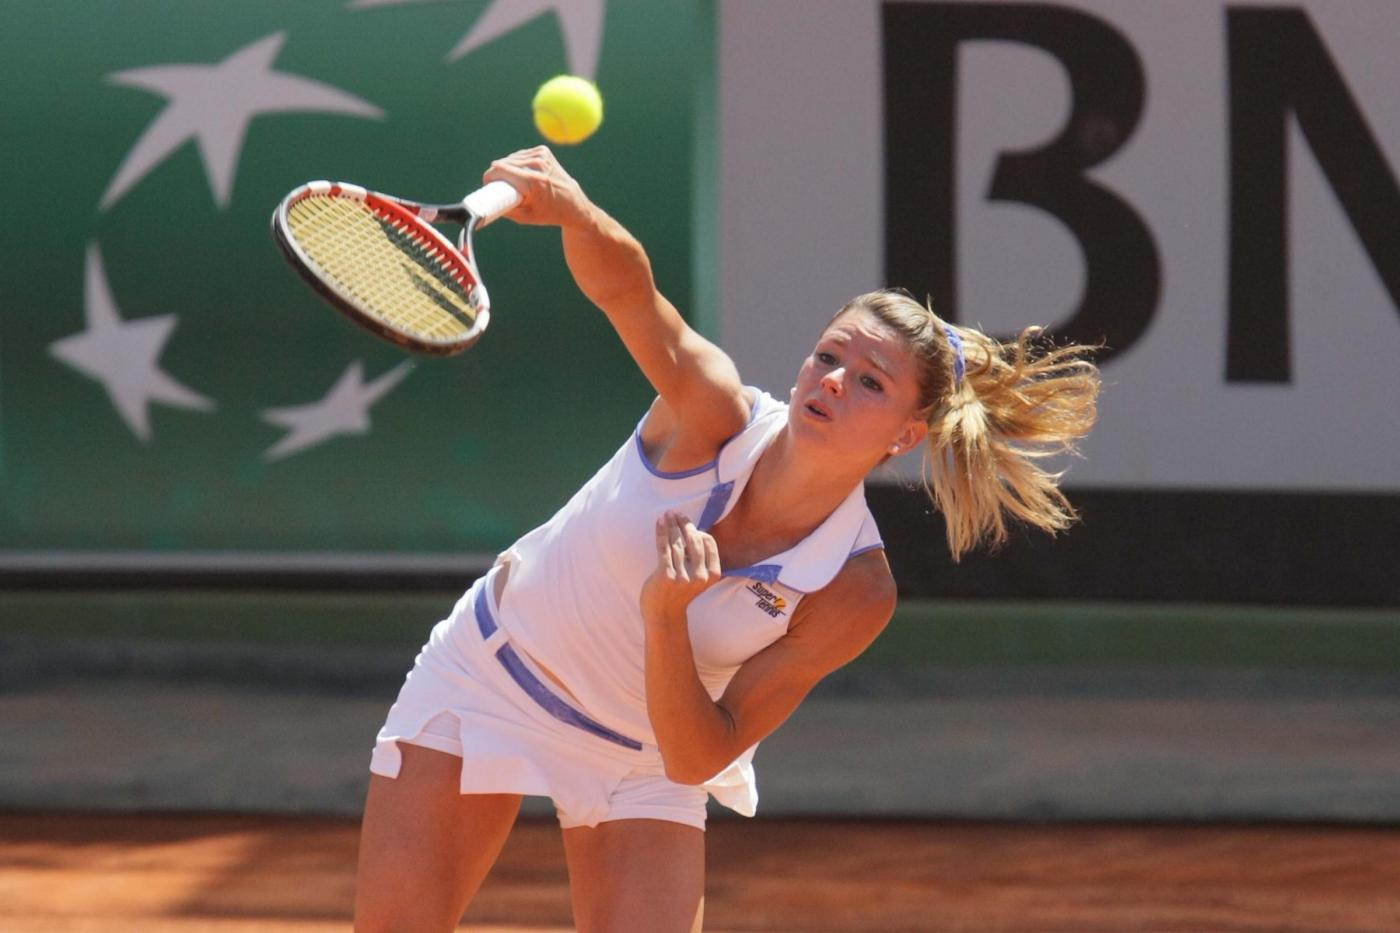 Tennis, Fed Cup: Italia batte USA 3-2 in rimonta